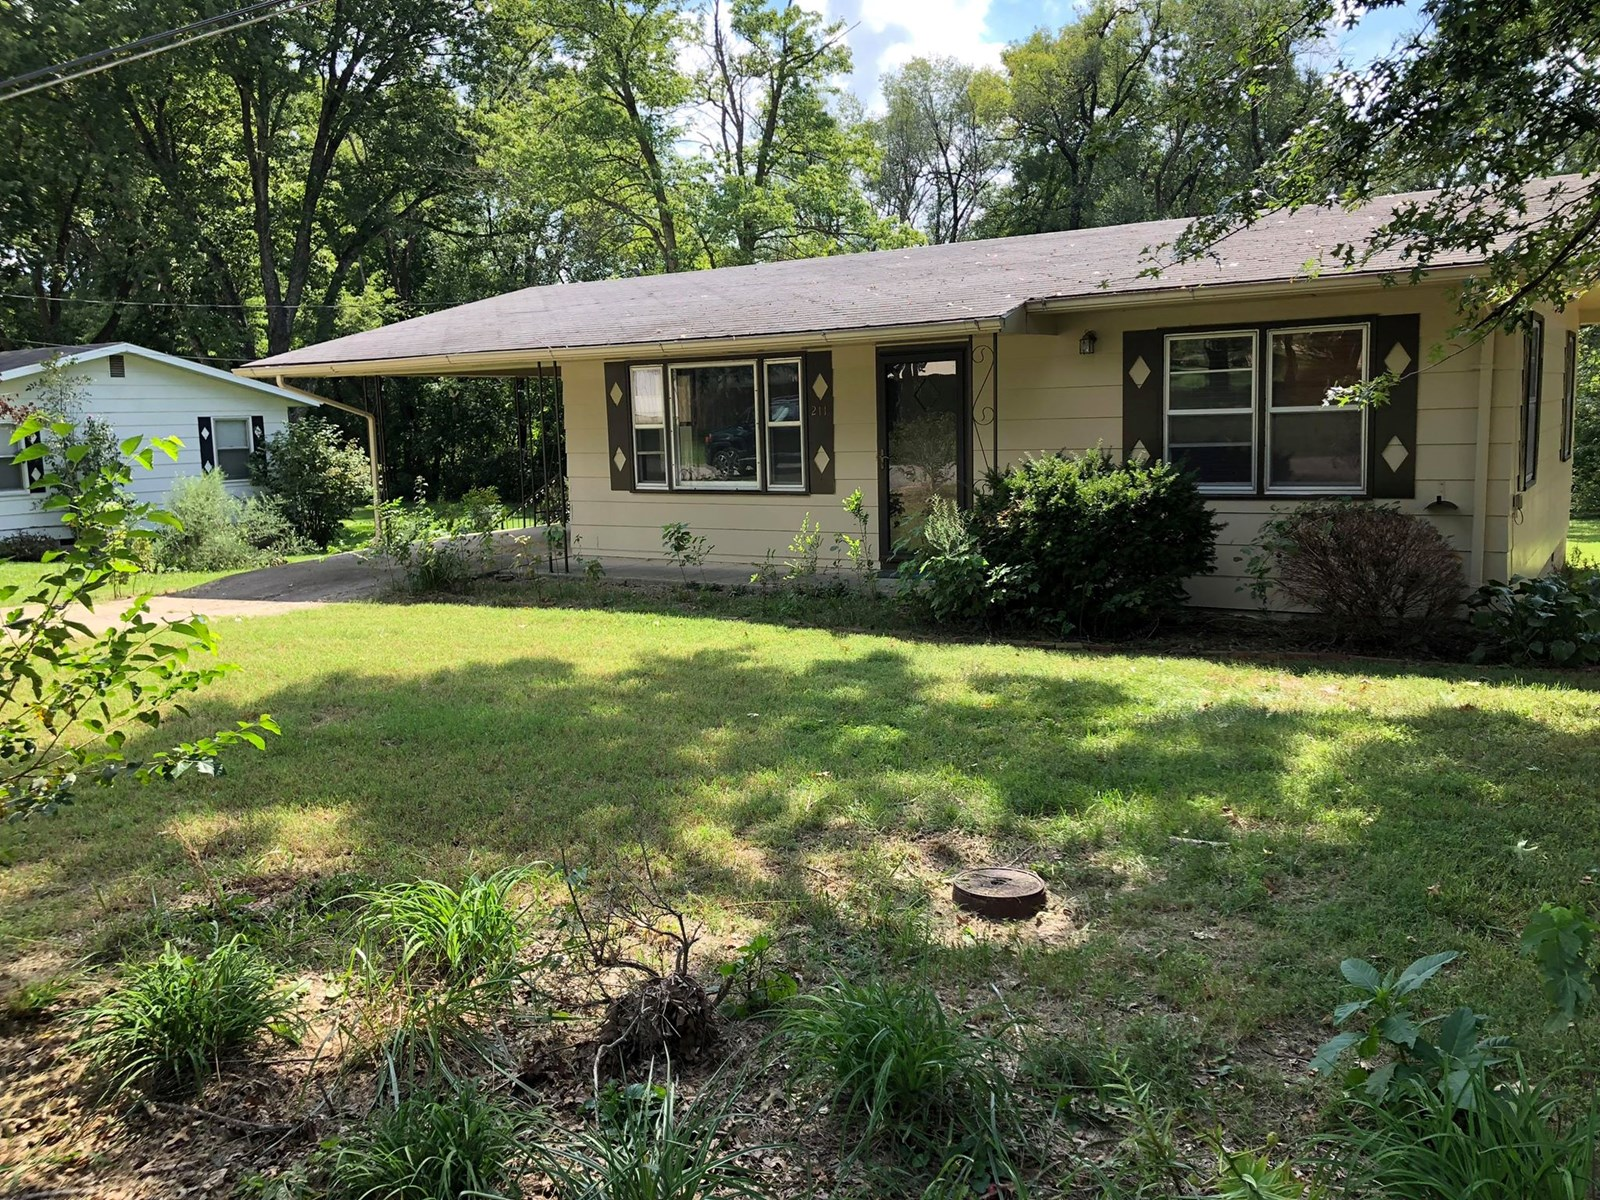 House for sale in Ava, Mo